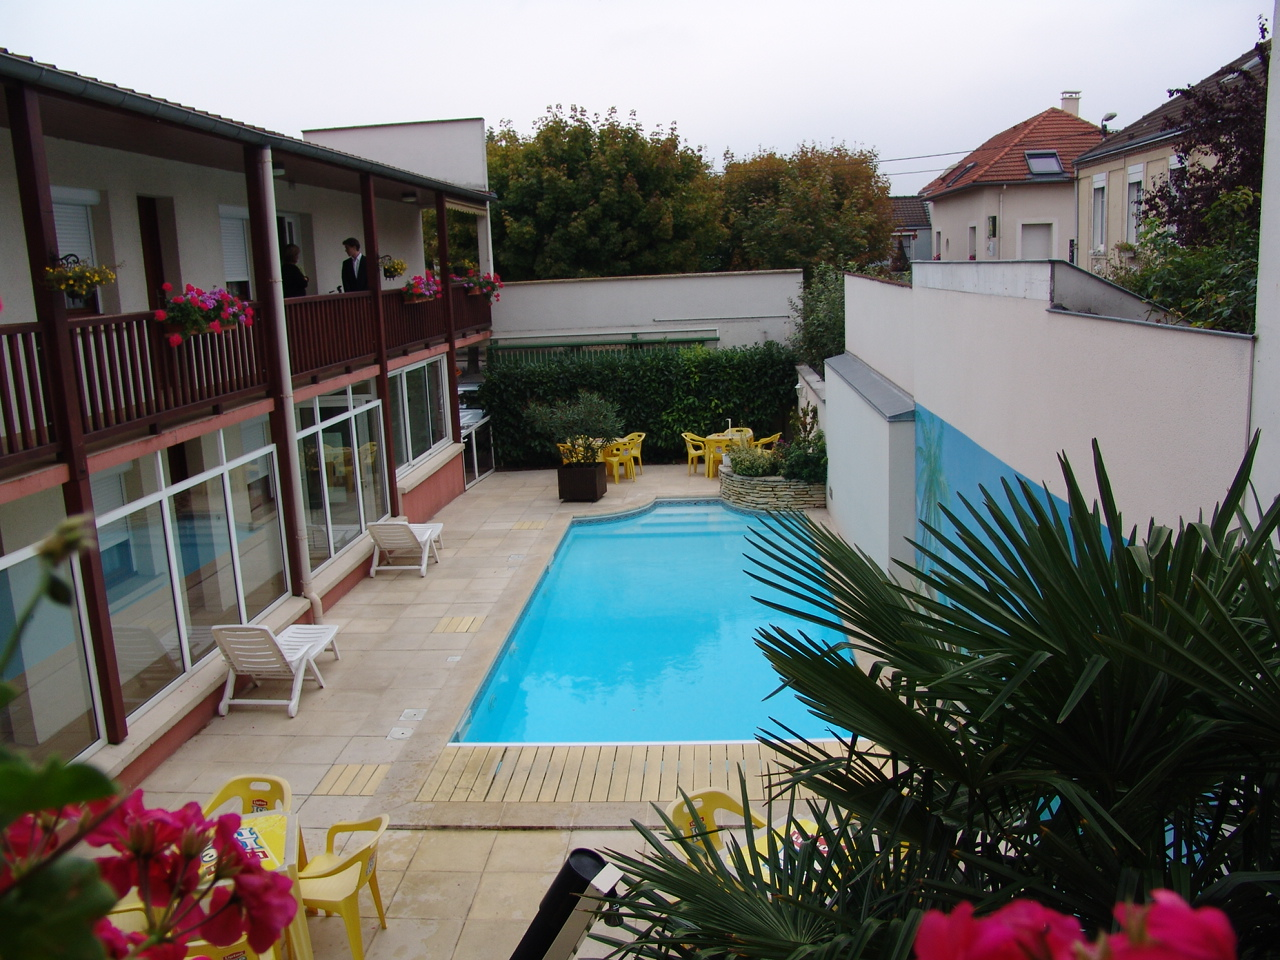 H tel au tambour reims for Ouverture piscine reims